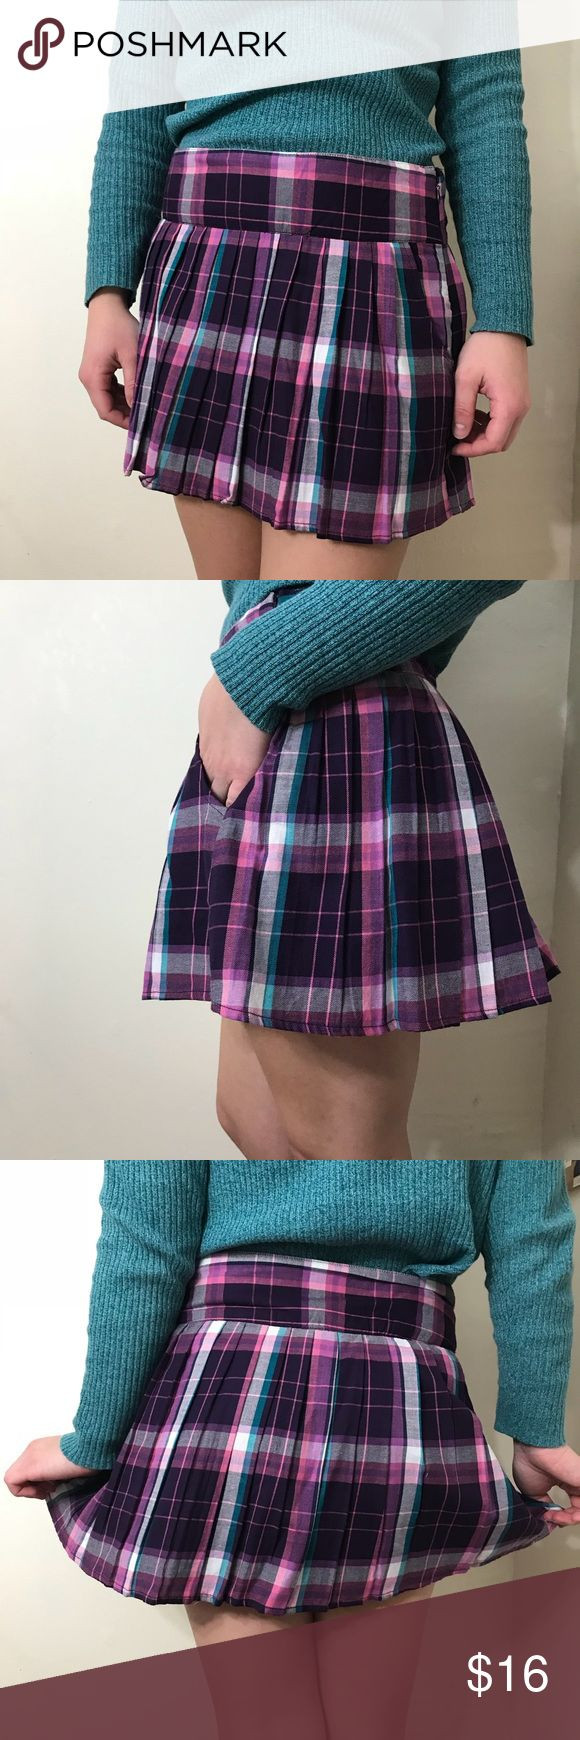 Purple plaid Aeropostale skirt Super cute purple skirt! Only worn once, in perfect condition. There is a clasp at the top of the zipper (pictured) that is held with string, this is how it was in the store Aeropostale Skirts Mini